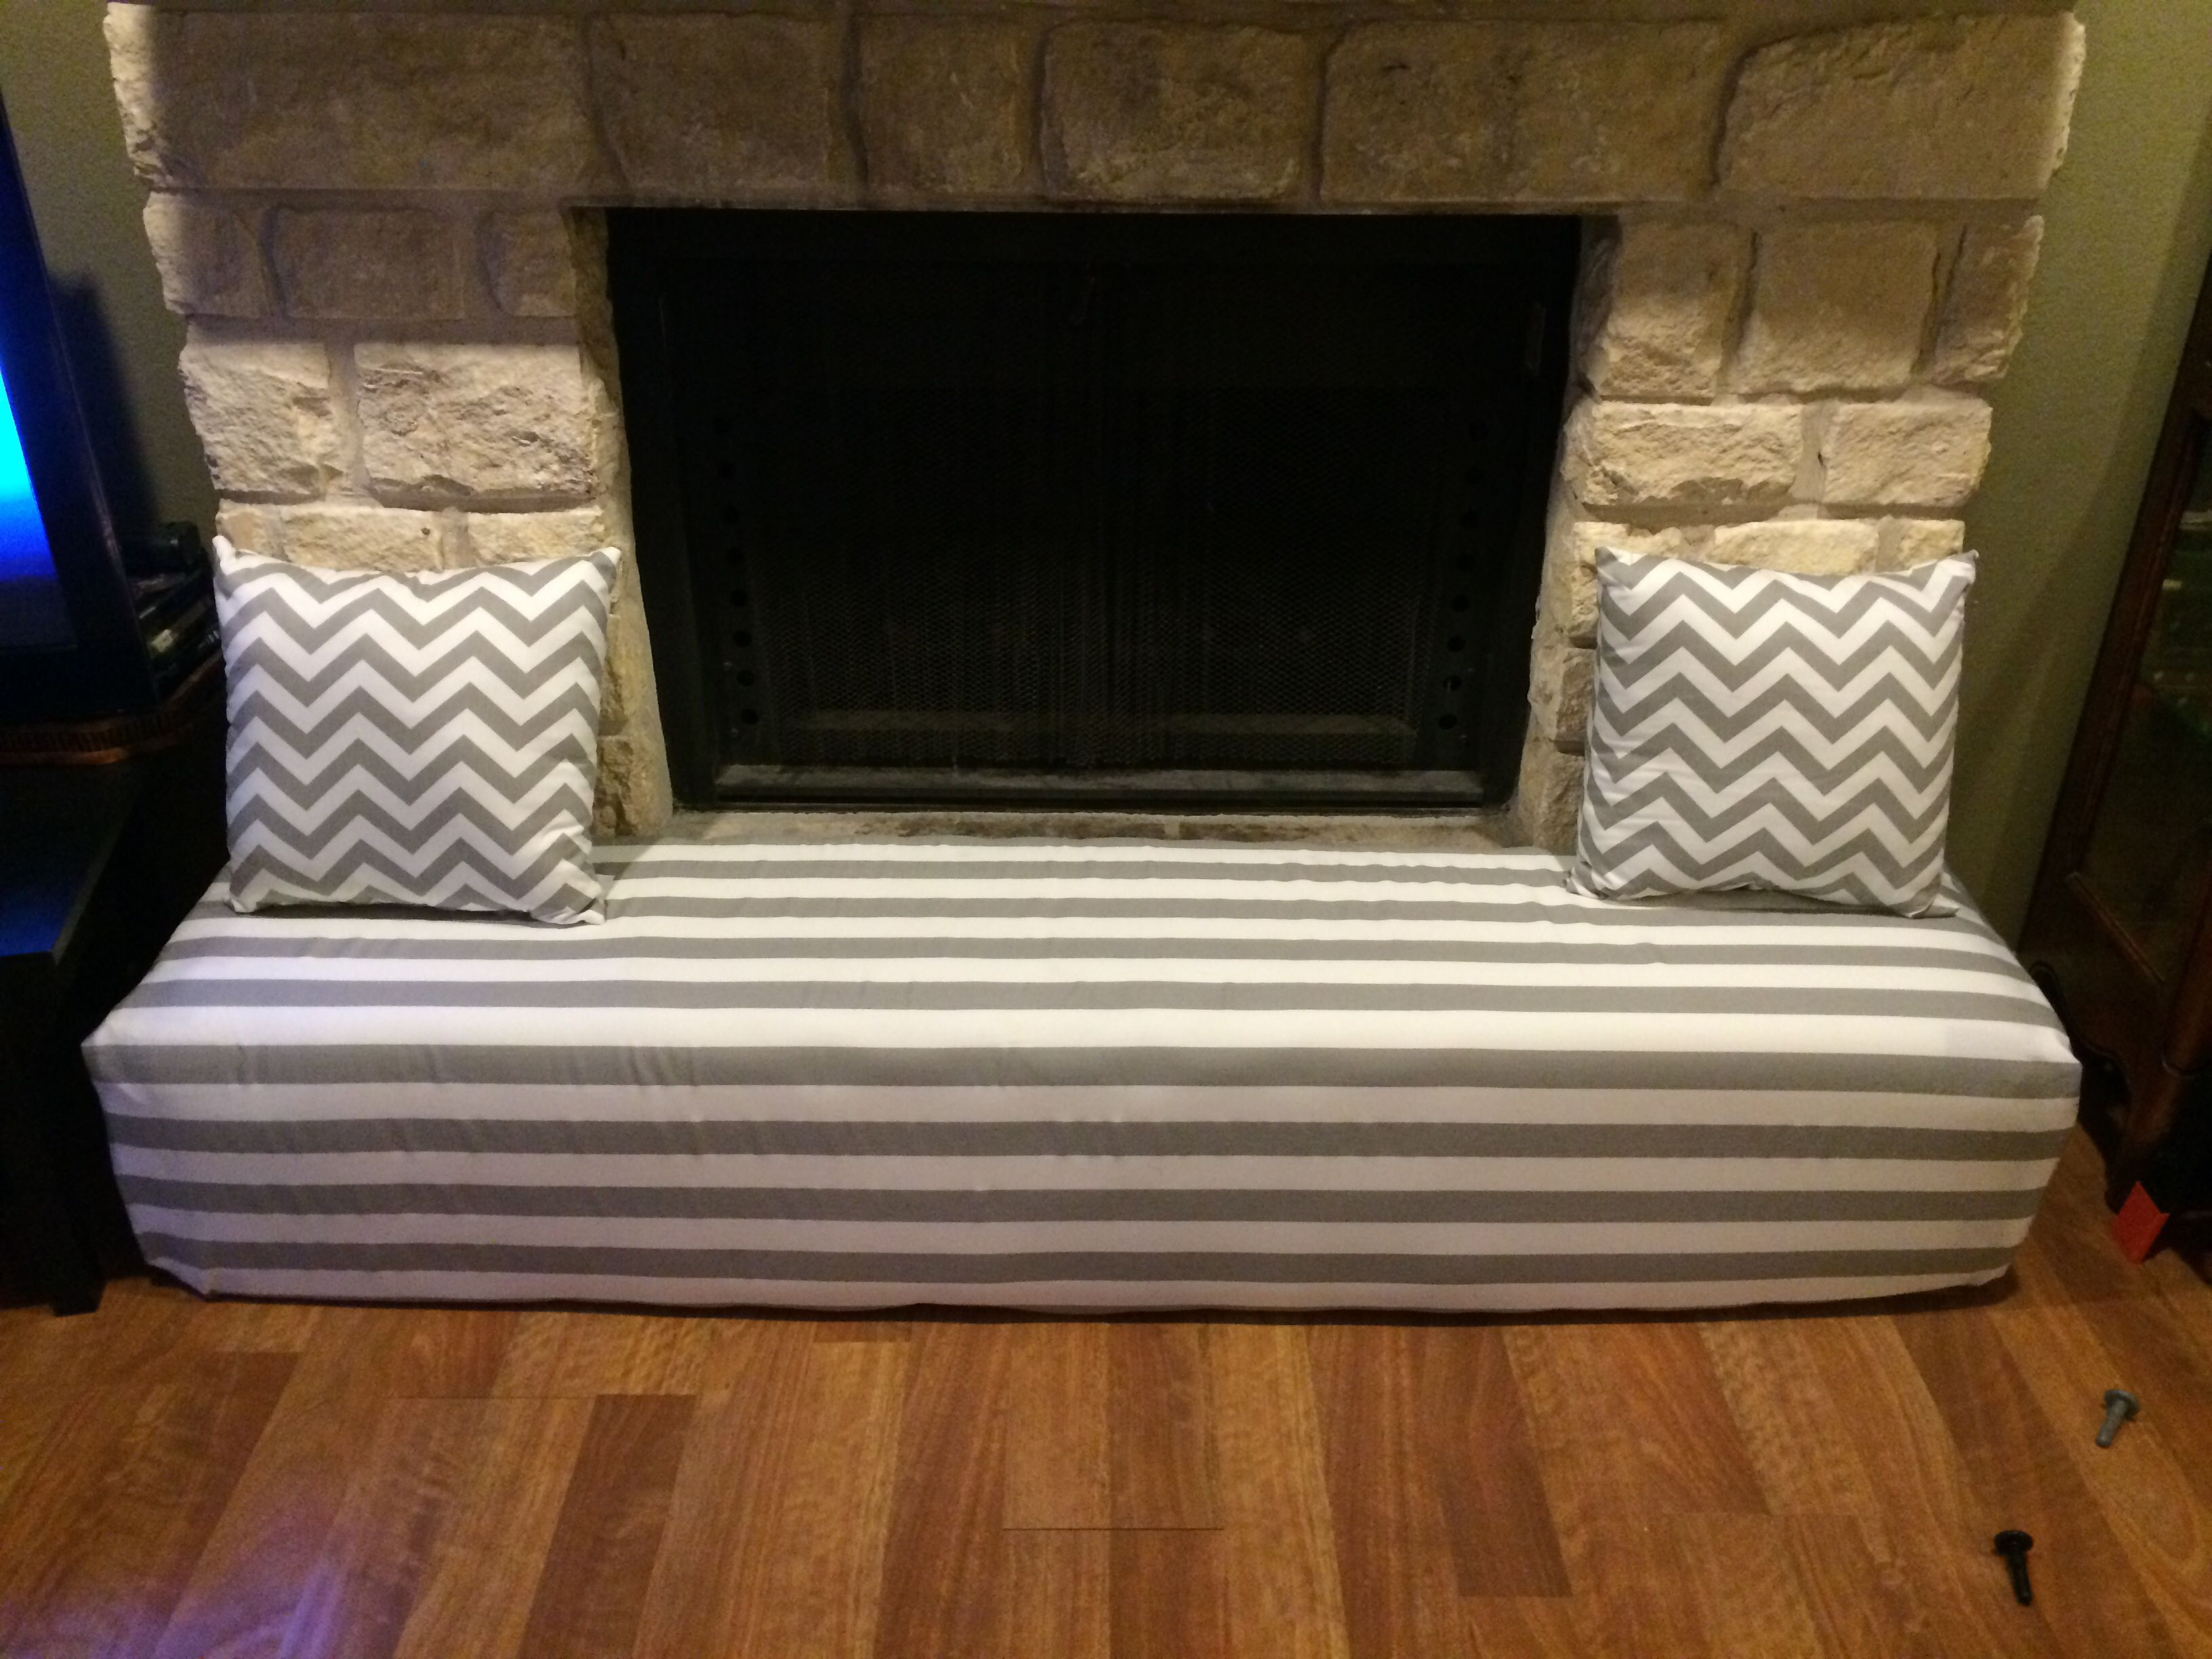 Fireplace cover - child proofing the stone hearth Gray and white ...